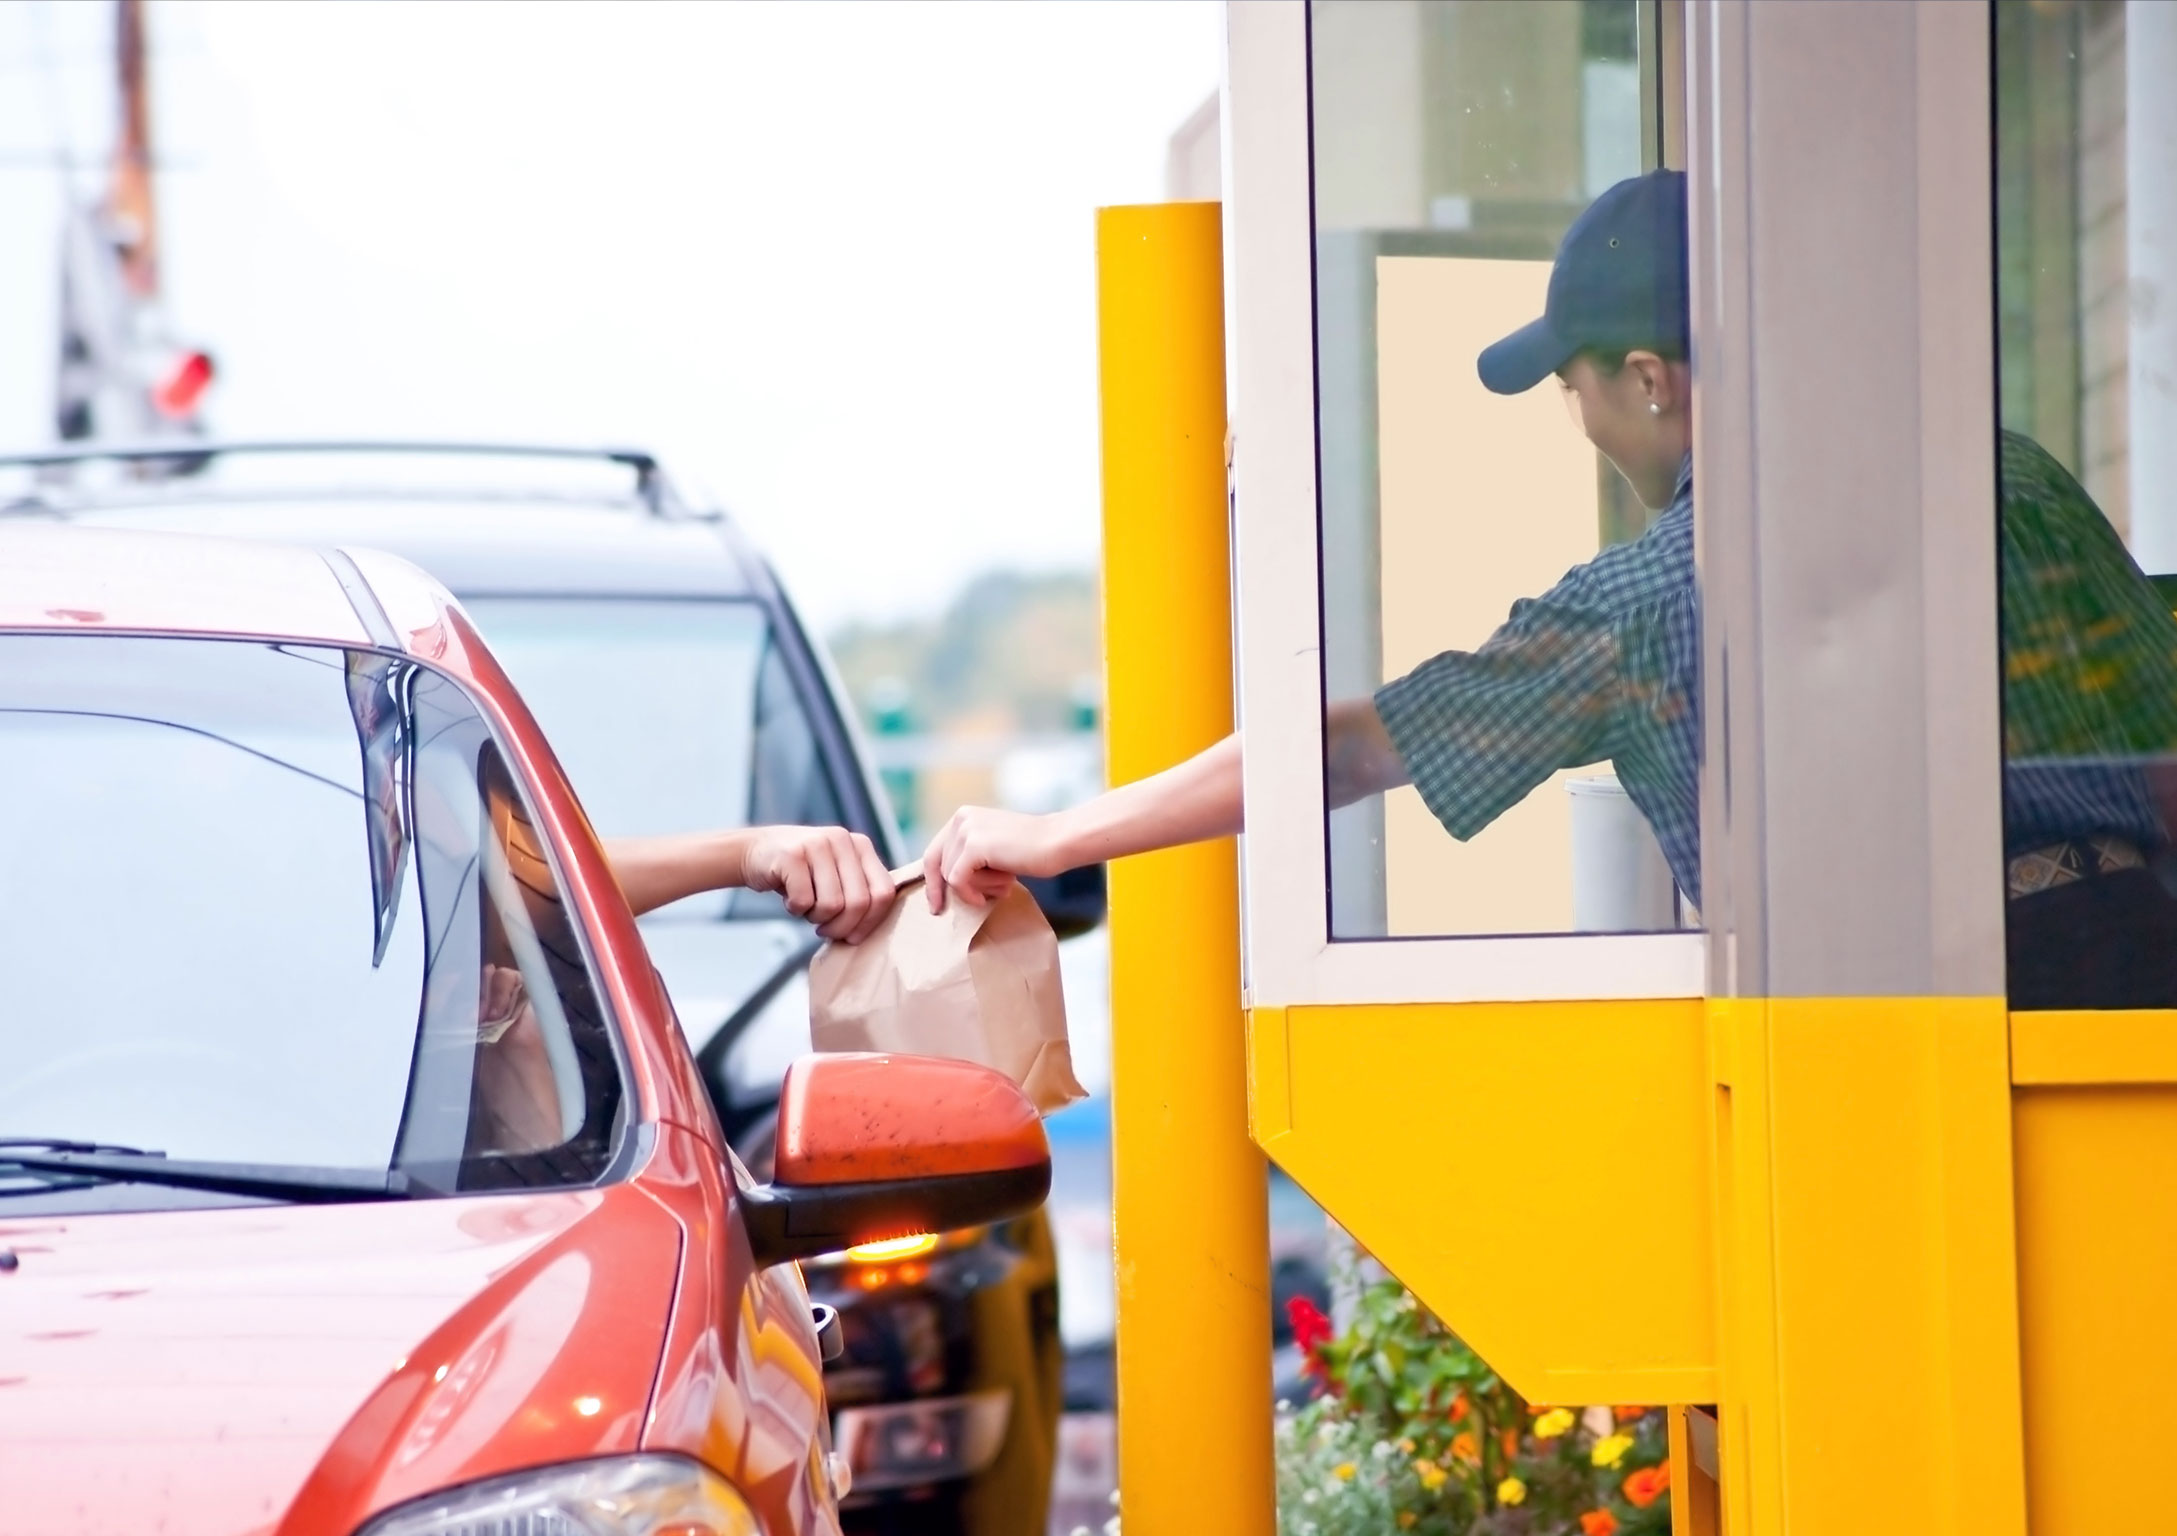 Handing someone food at drive thru